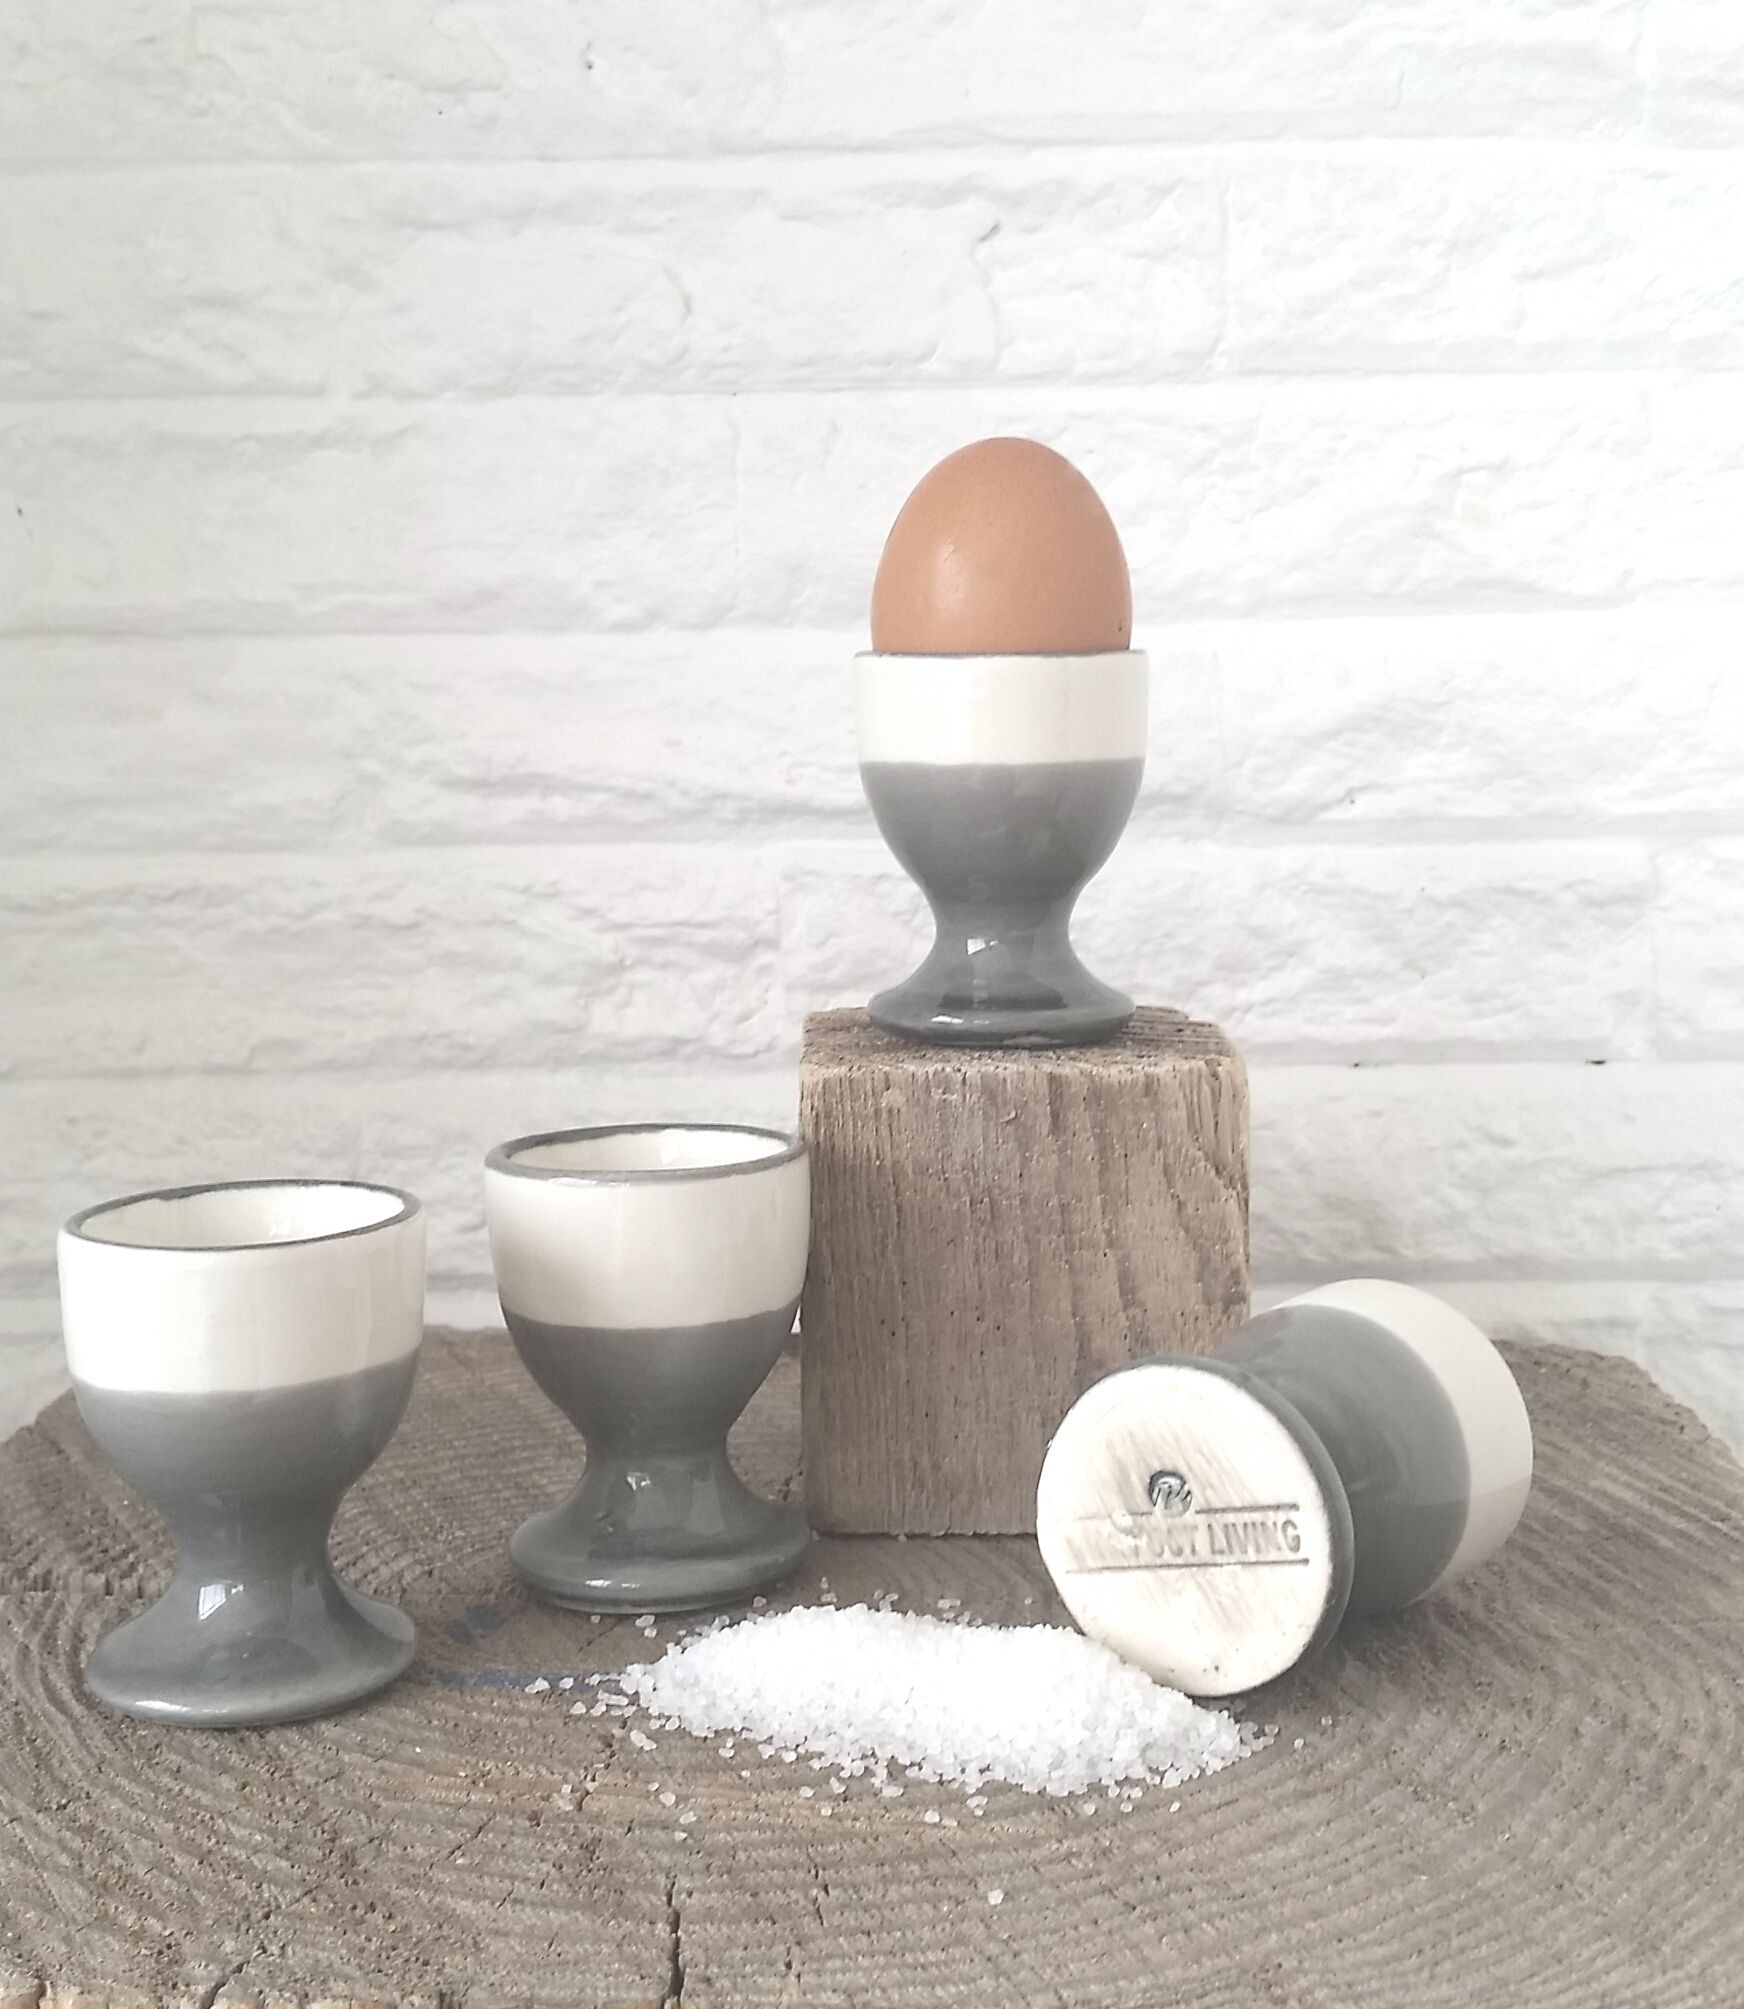 ceramics handmade eggs kitchen  Barefoot Living by Til Schweiger